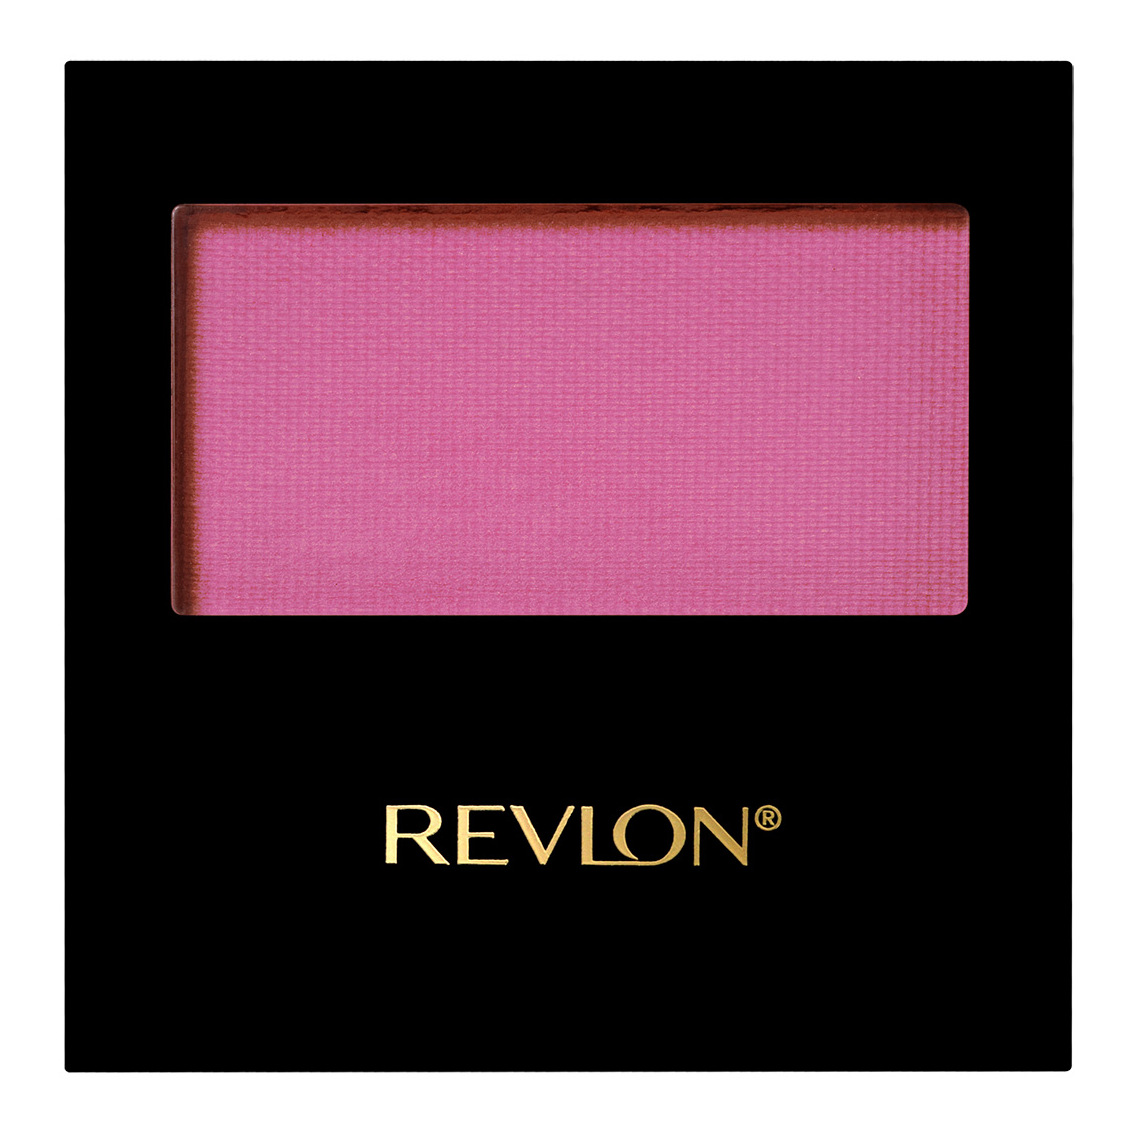 REVLON Румяна для лица 020 / Powder Blush Ravishing rose - Румяна